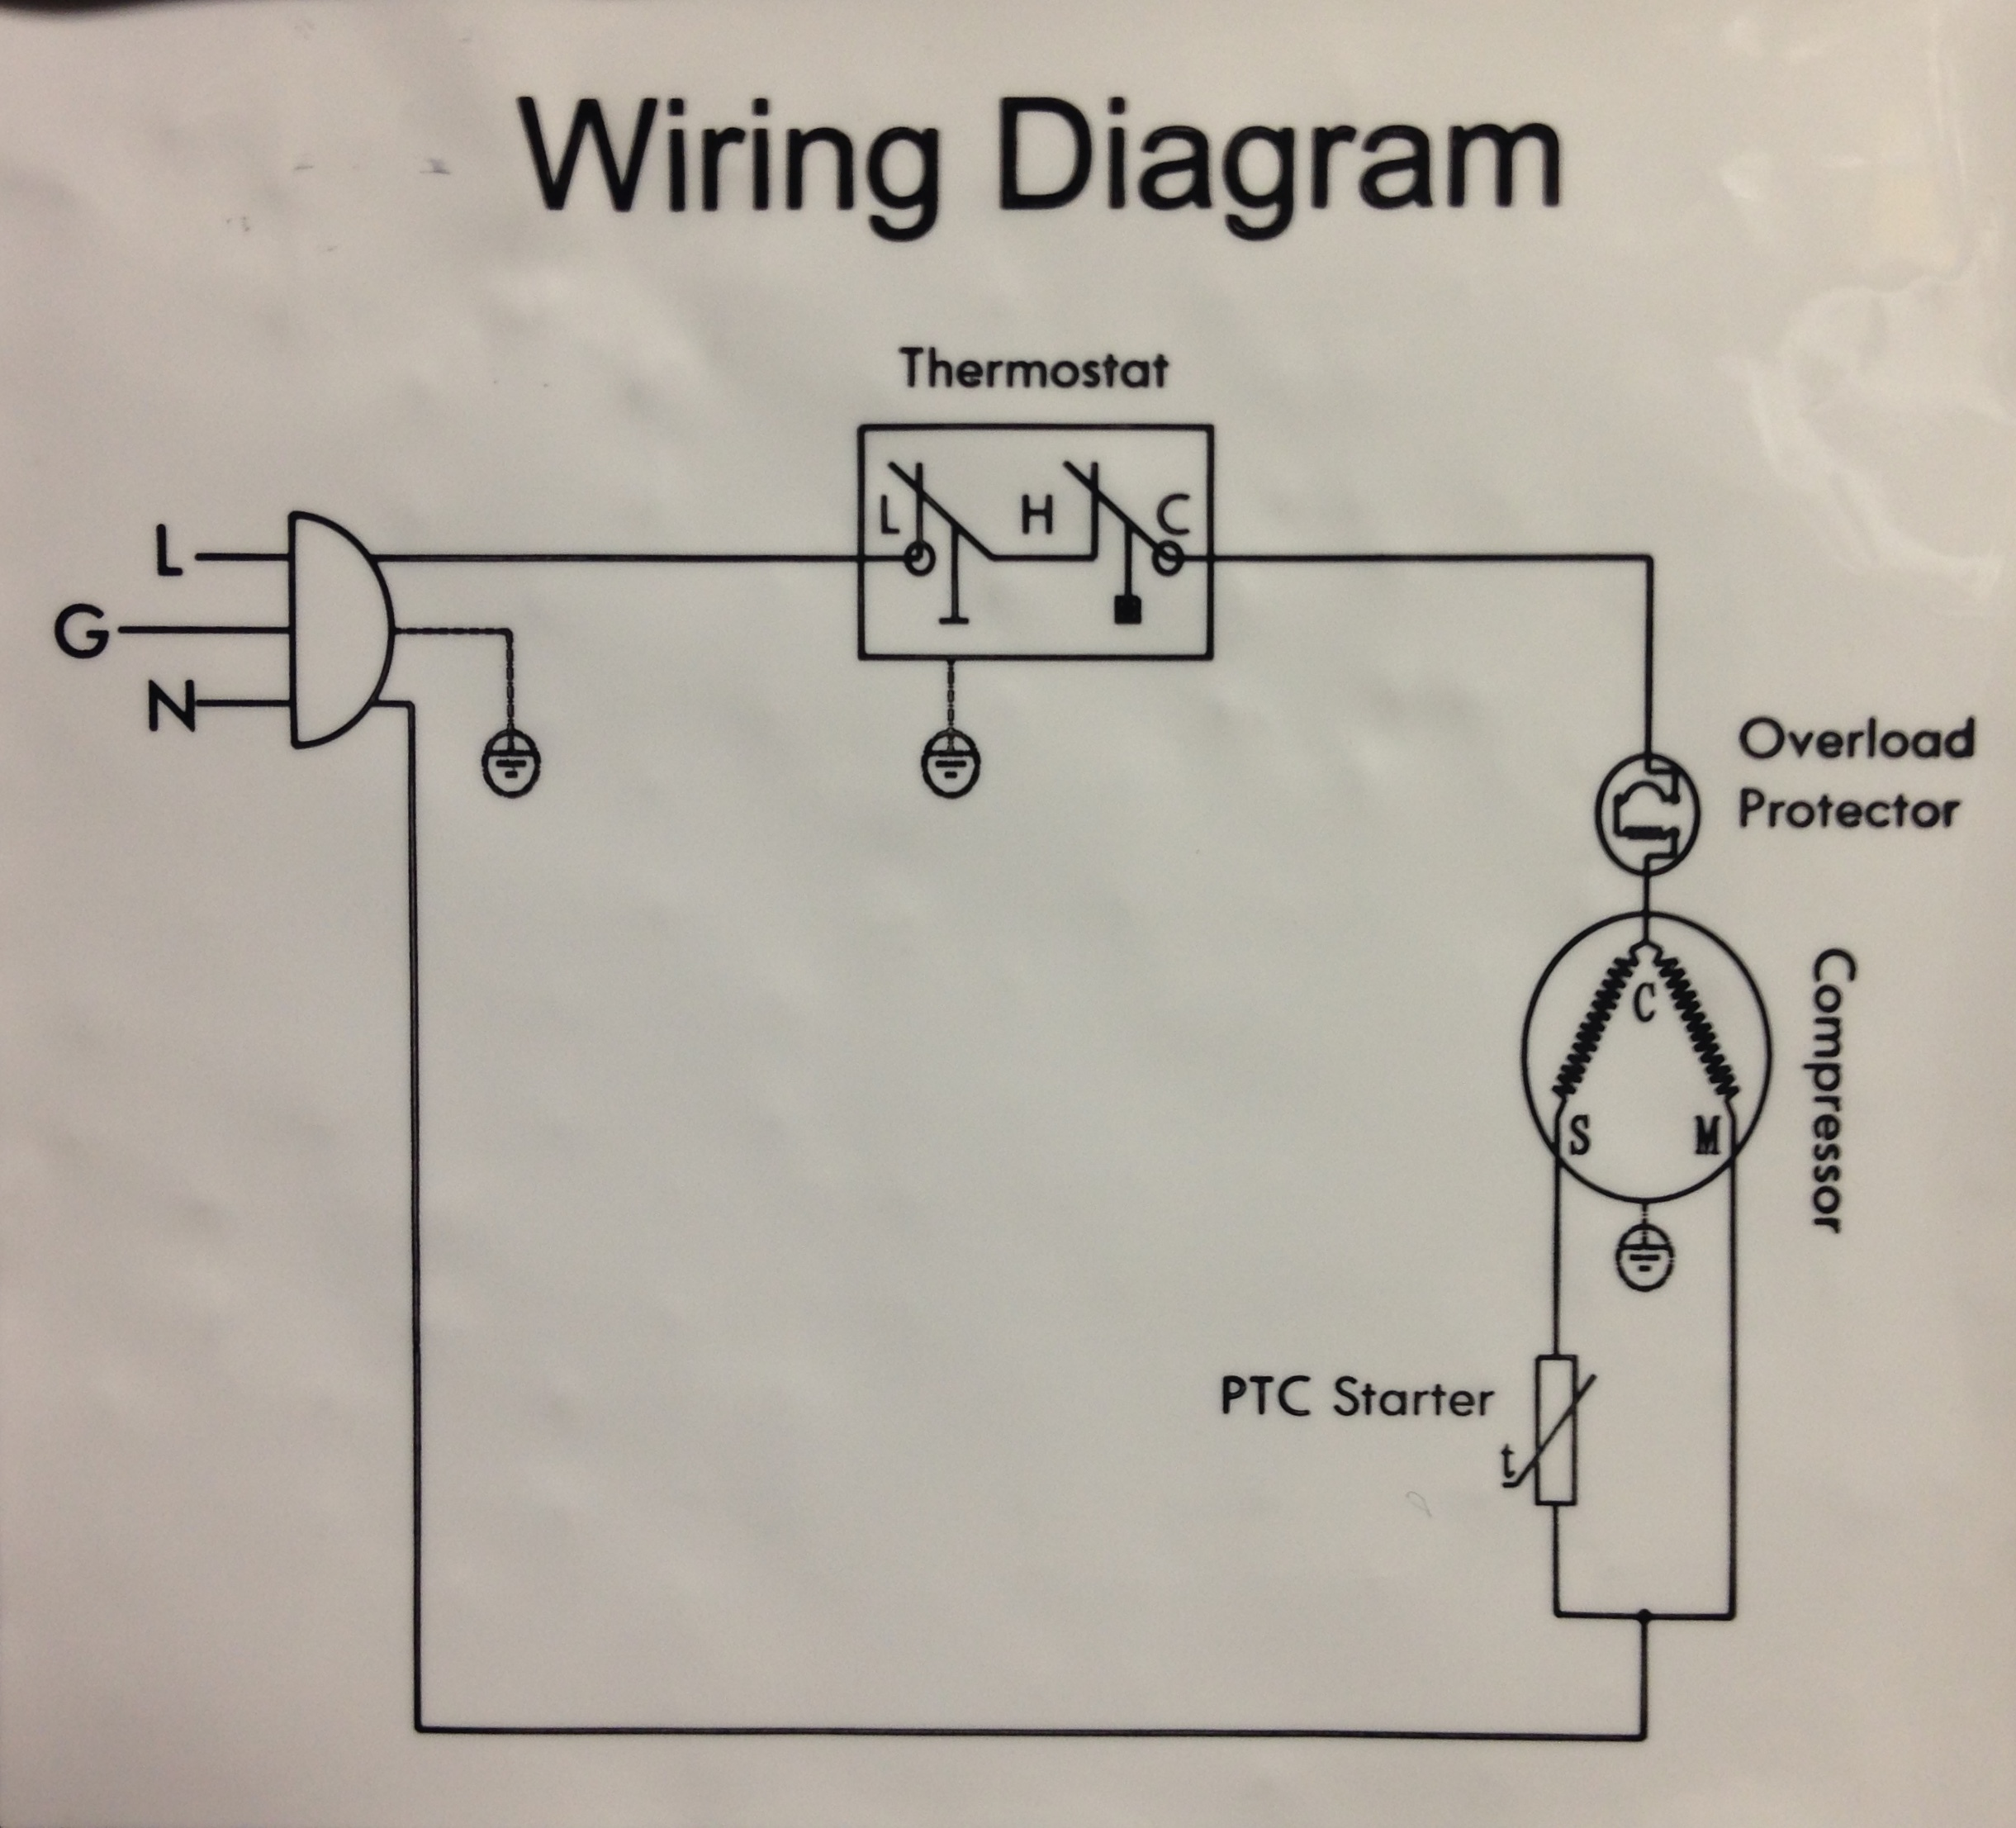 New build electronics newb diagram help fridge build brewpi wiring diagram for my fridge img0502g2441x2213 946 kb asfbconference2016 Images